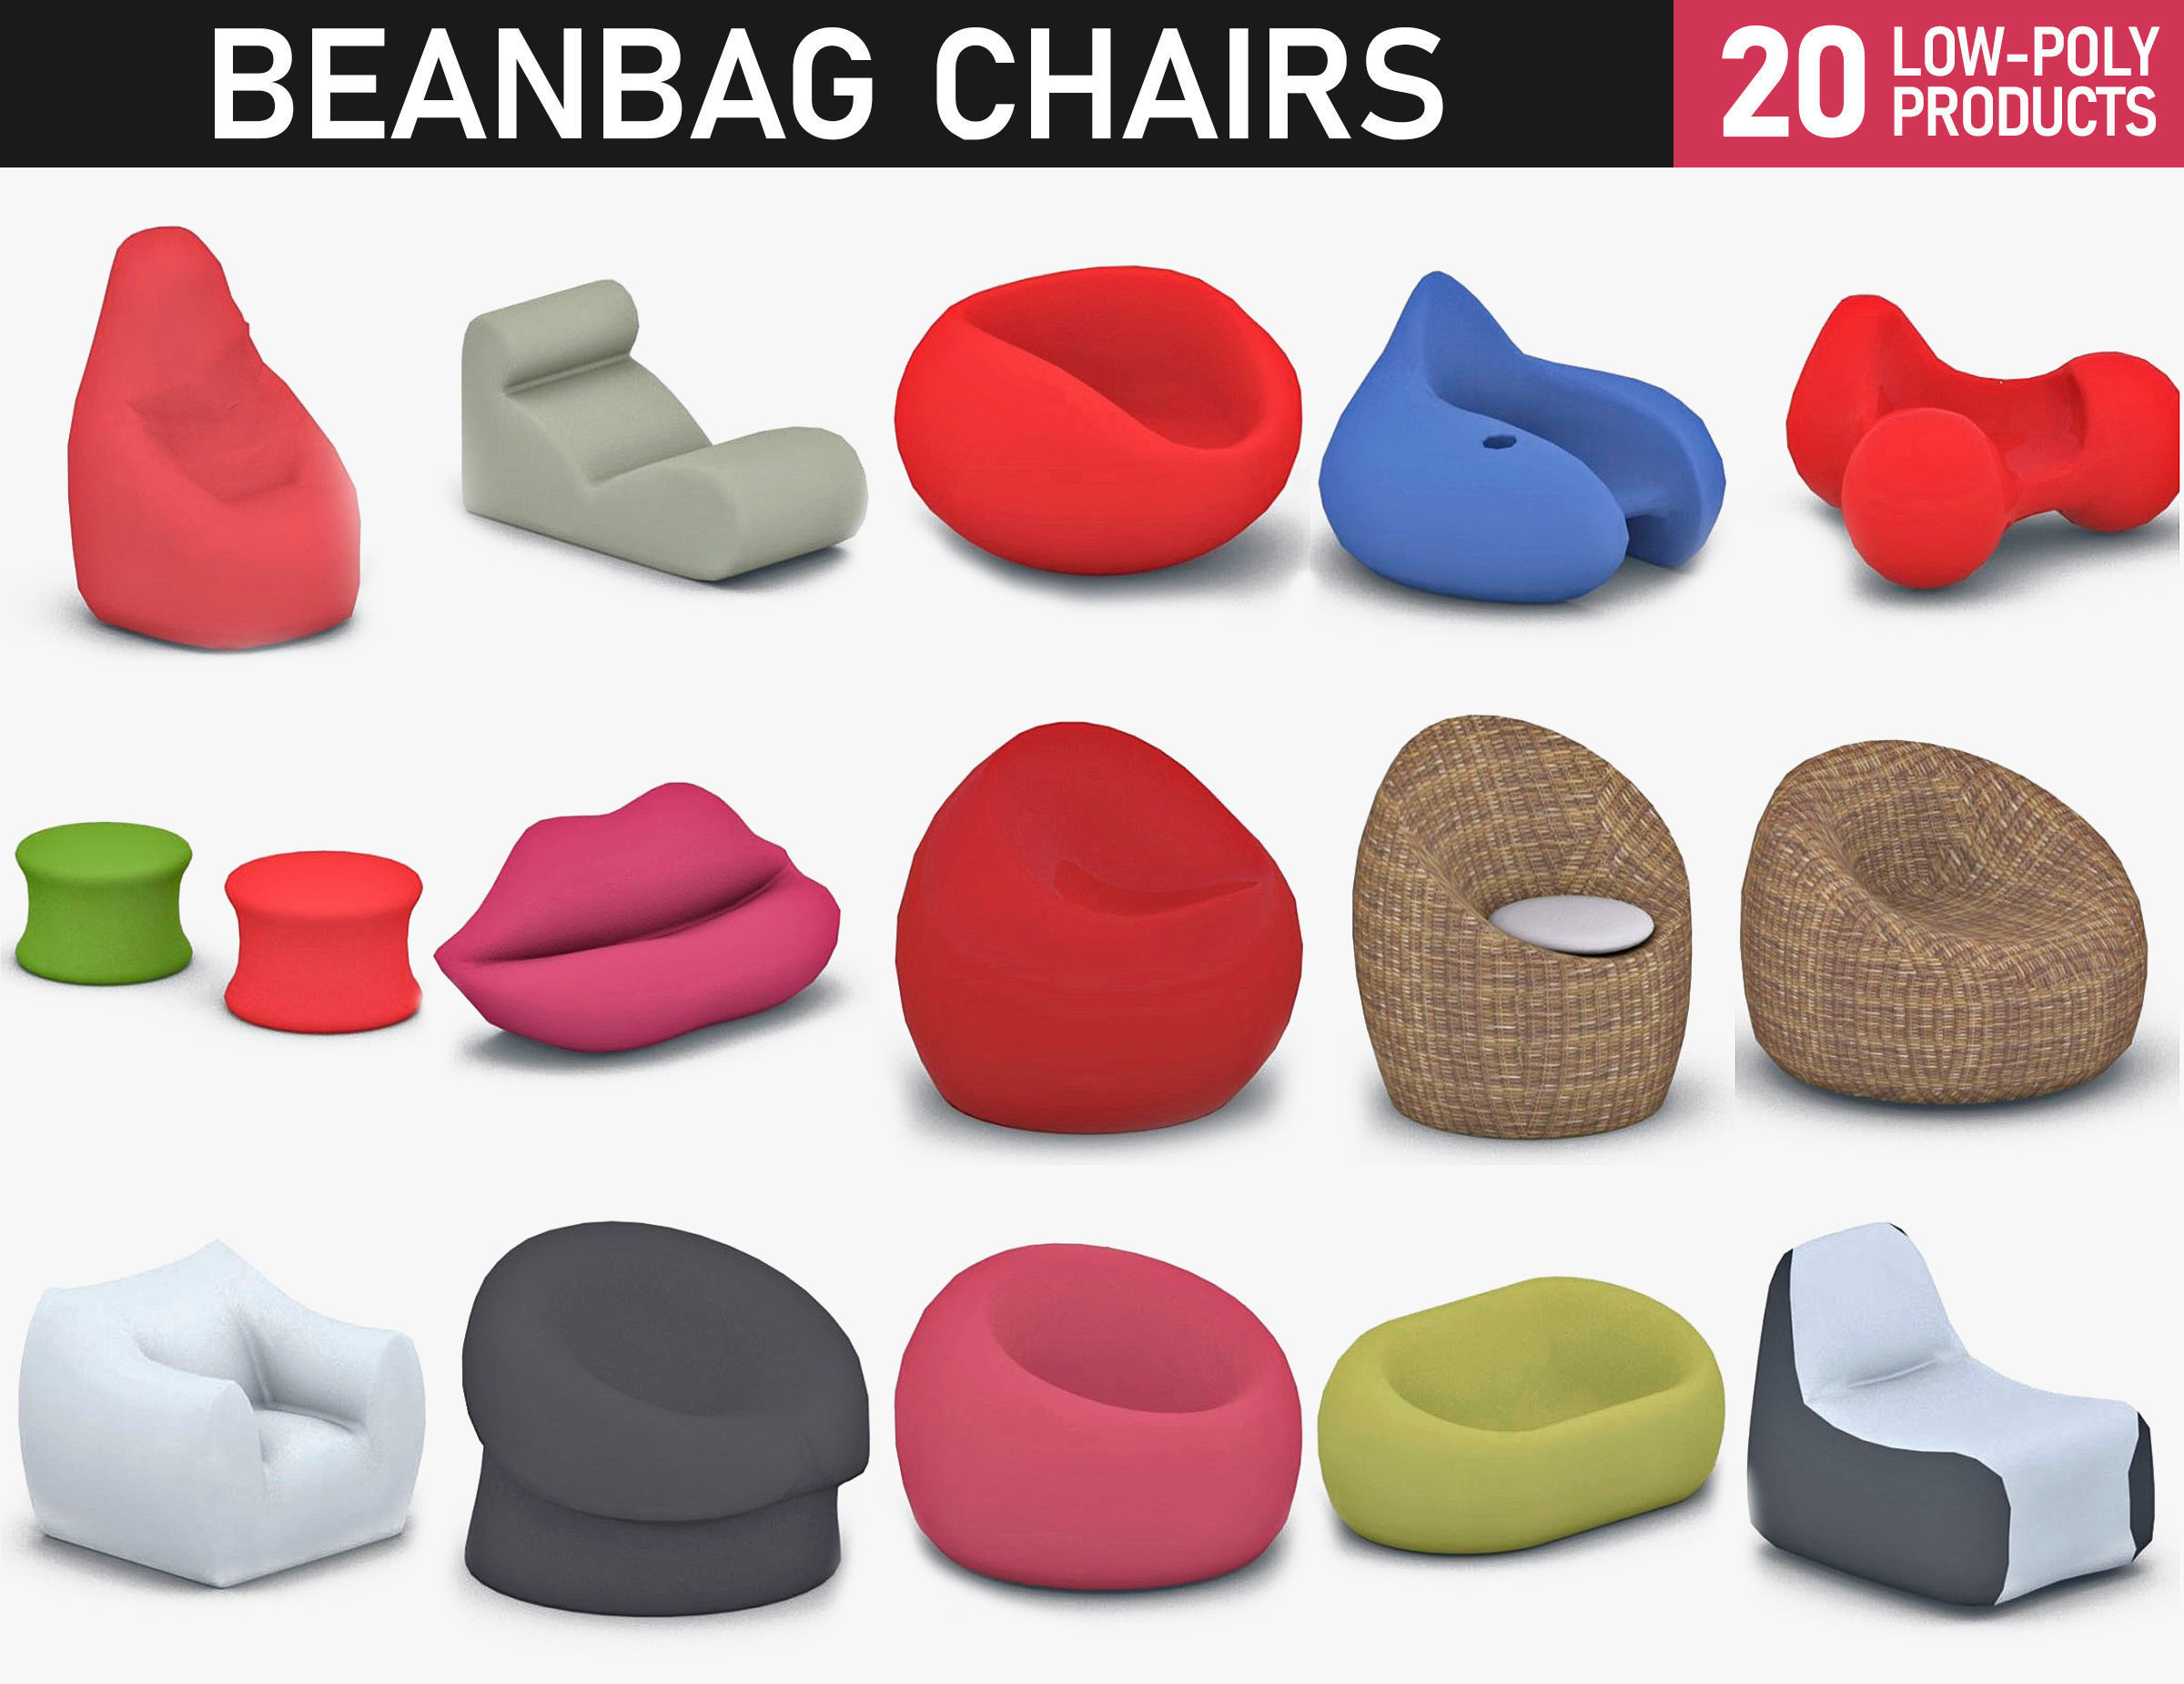 Stupendous Bean Bag Chairs Collection 3D Model Pabps2019 Chair Design Images Pabps2019Com